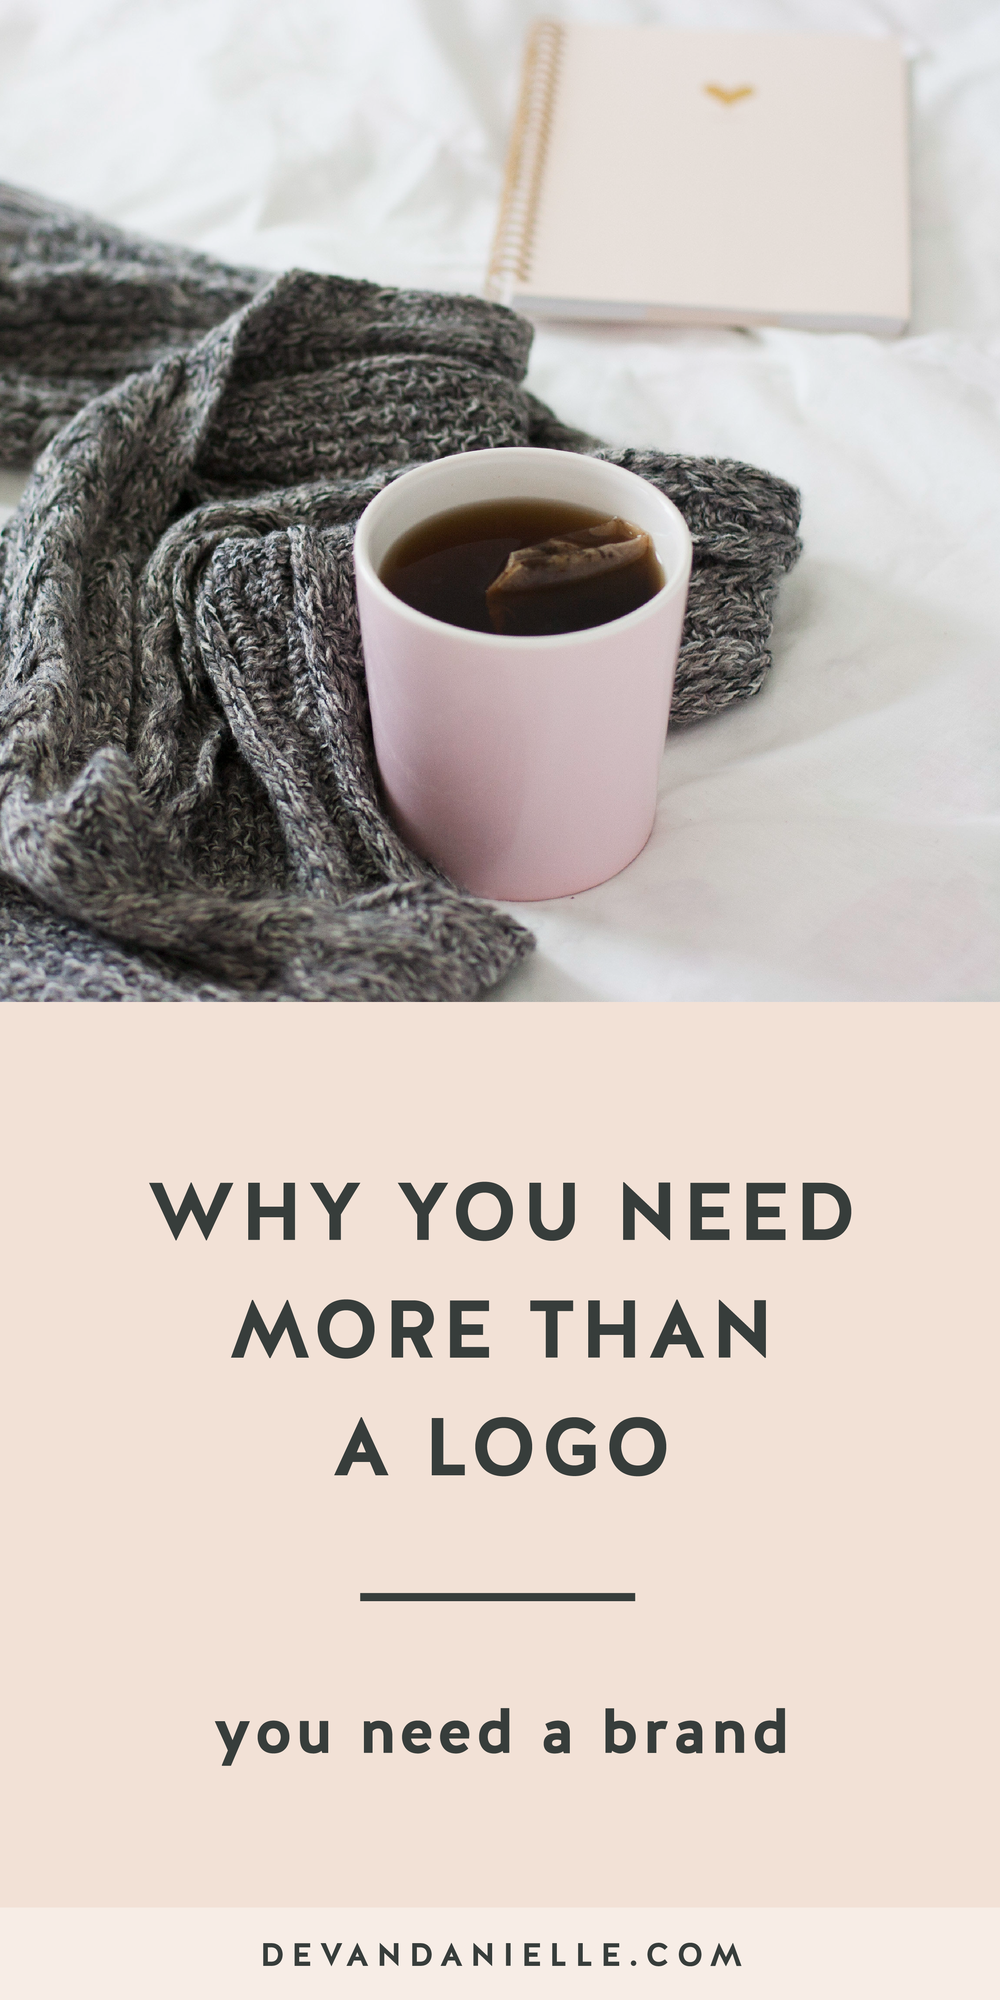 Why you need more than a logo